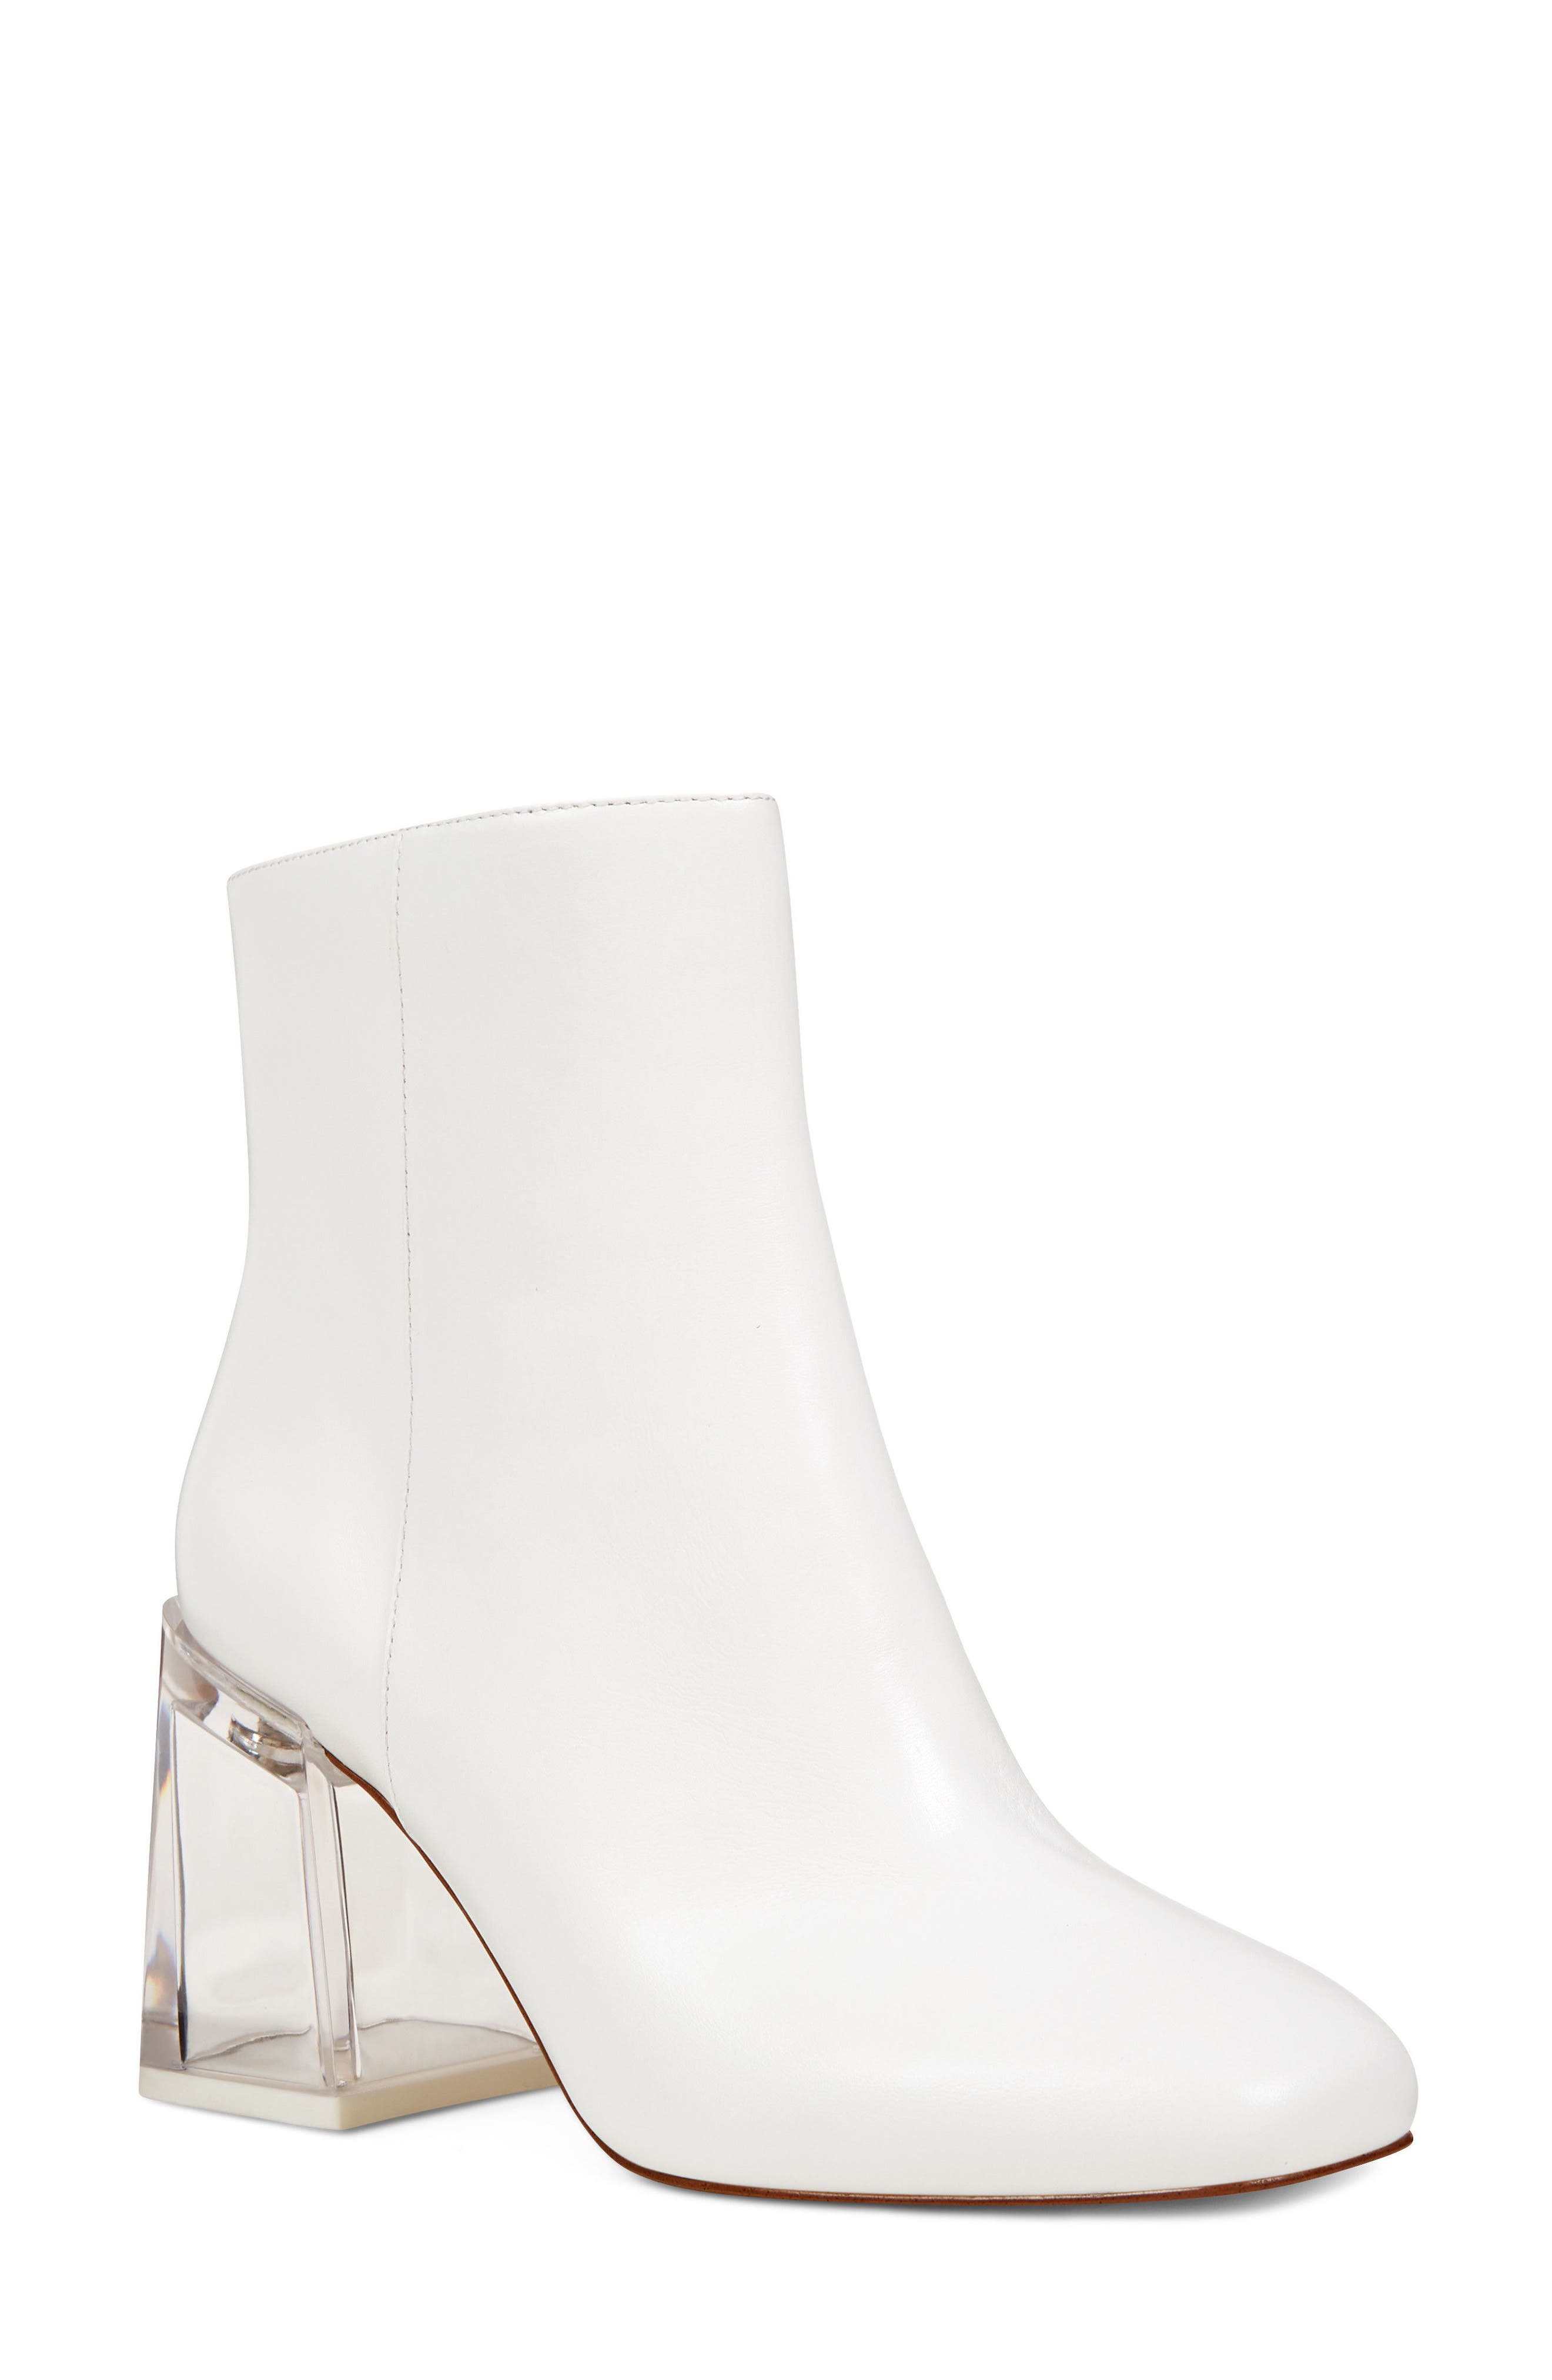 Nine West Apphappy Block Heel Bootie